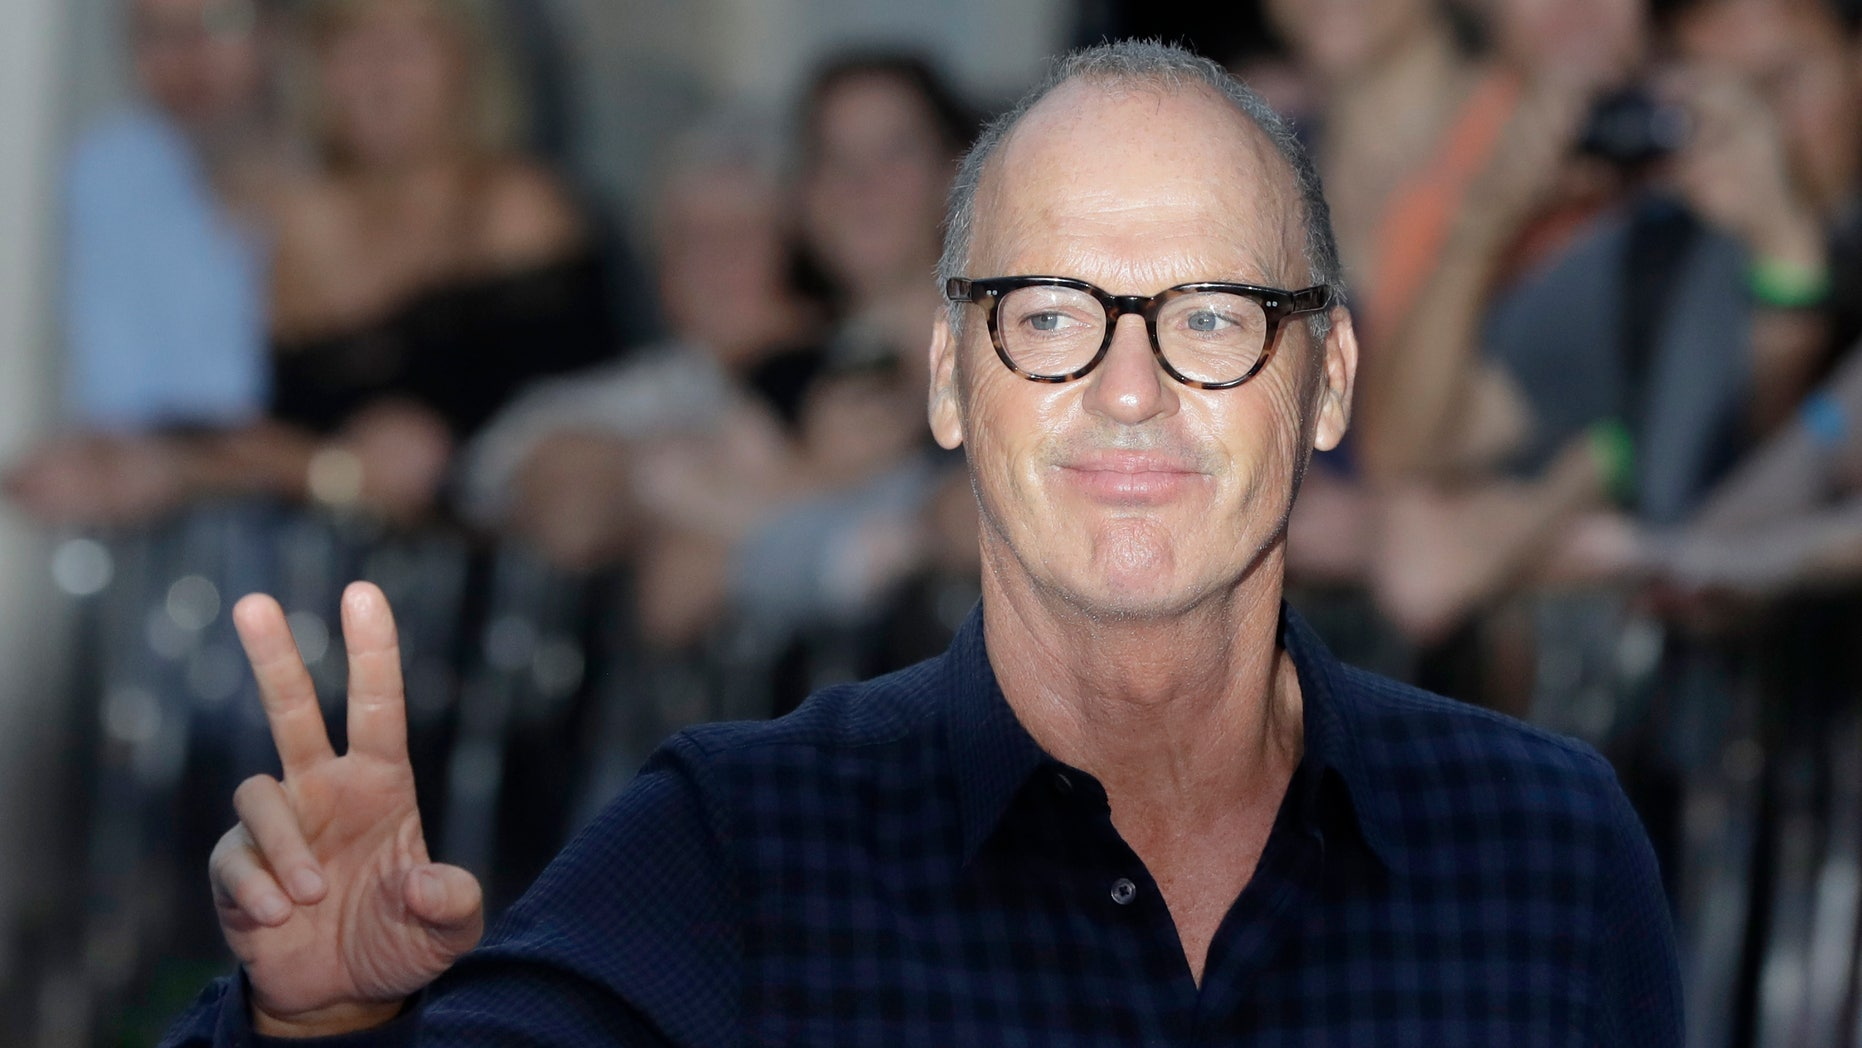 In this Sept. 15, 2016, file photo, actor Michael Keaton poses for photographers upon arrival at the world premiere of the film 'The Beatles, Eight Days a Week' in London.